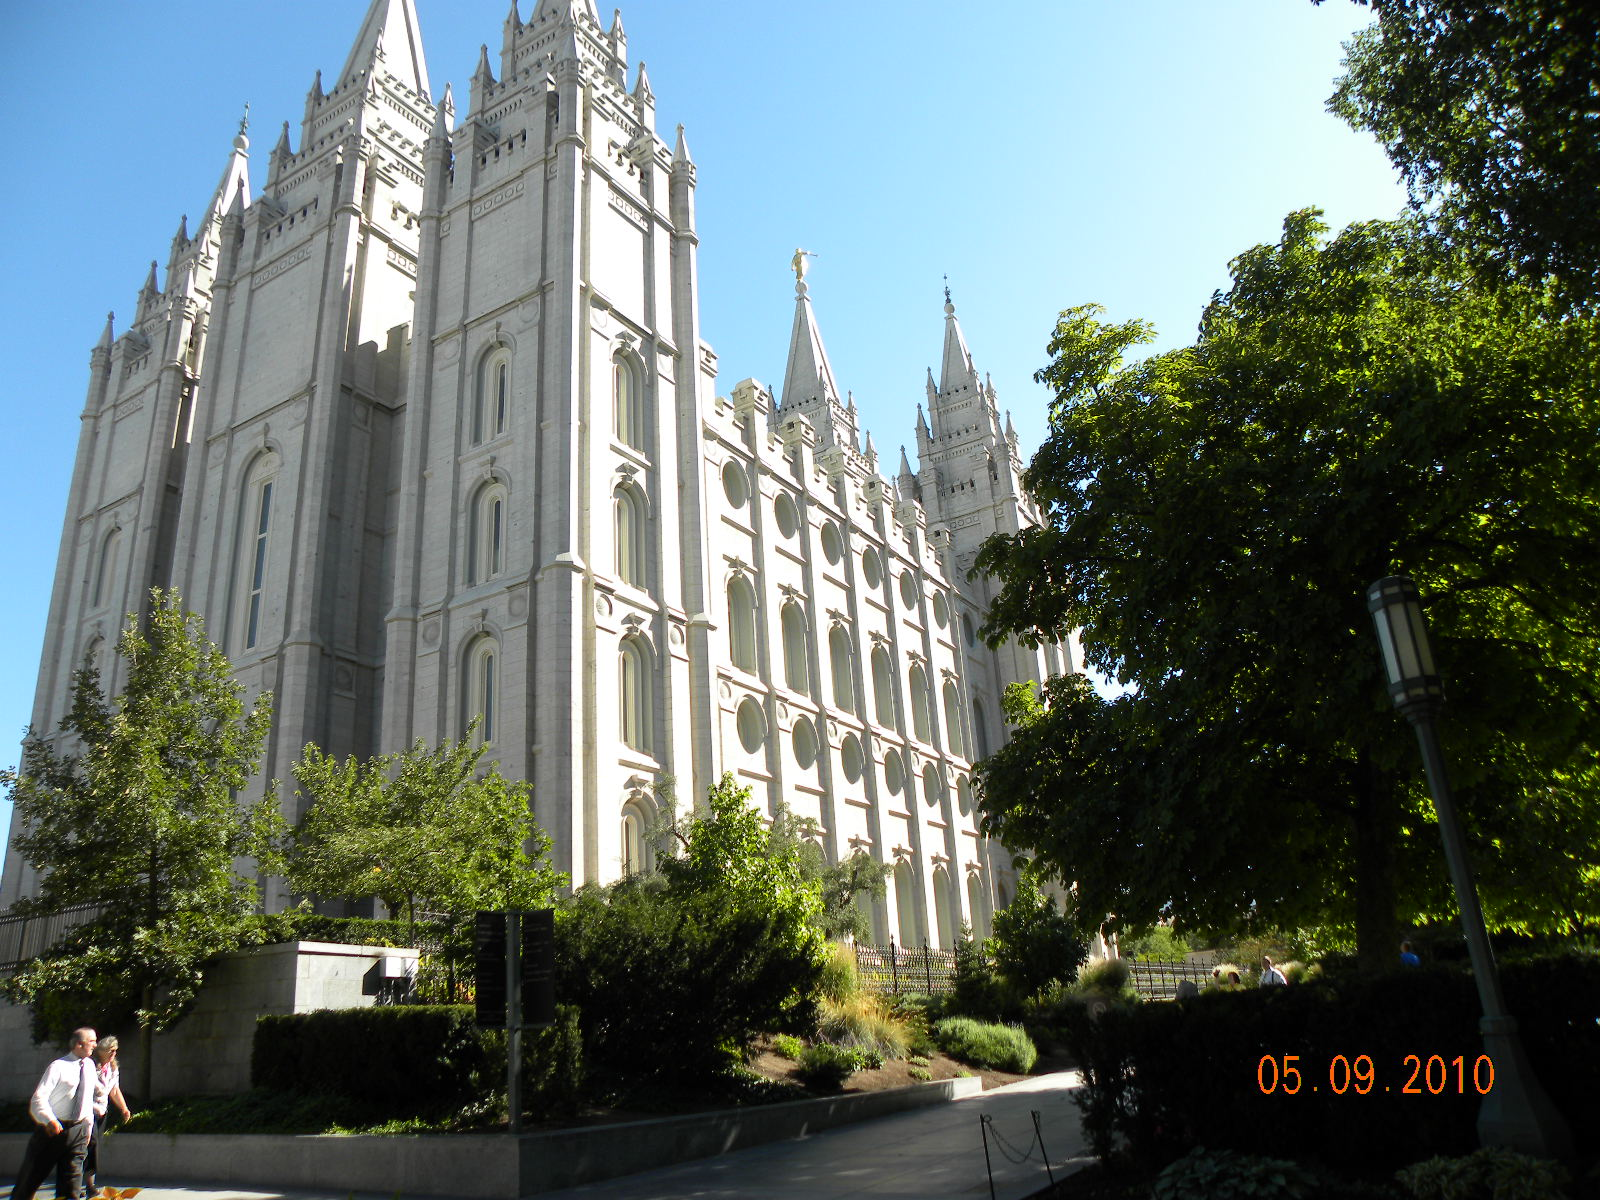 Cirujano de Implantes Mamarios en Salt Lake City